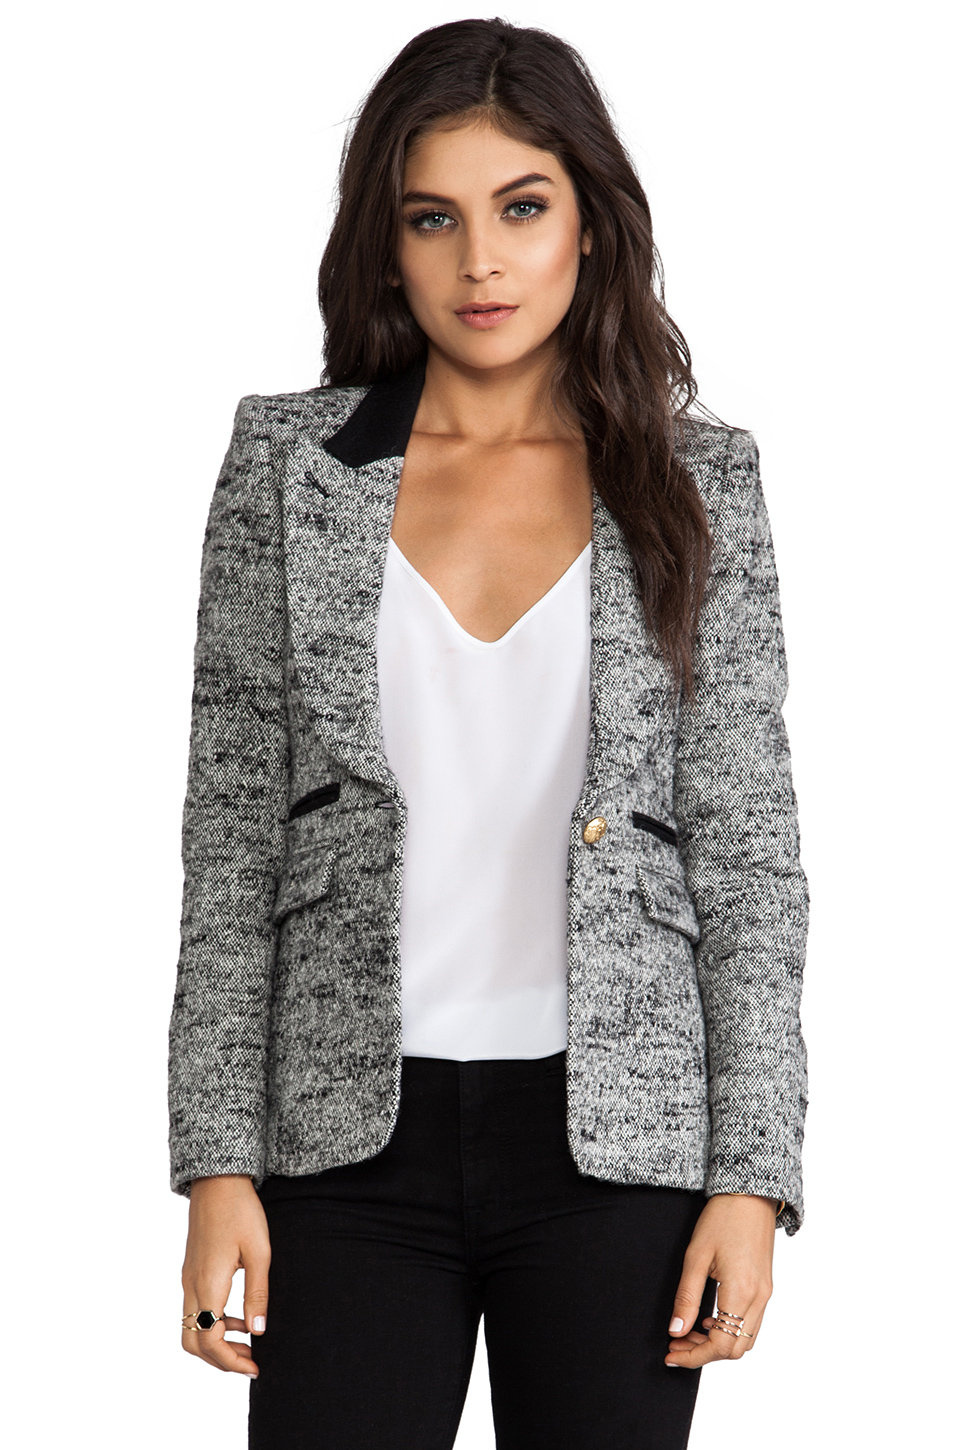 Smythe Peaked Lapel Blazer in Gray at Revolve Clothing